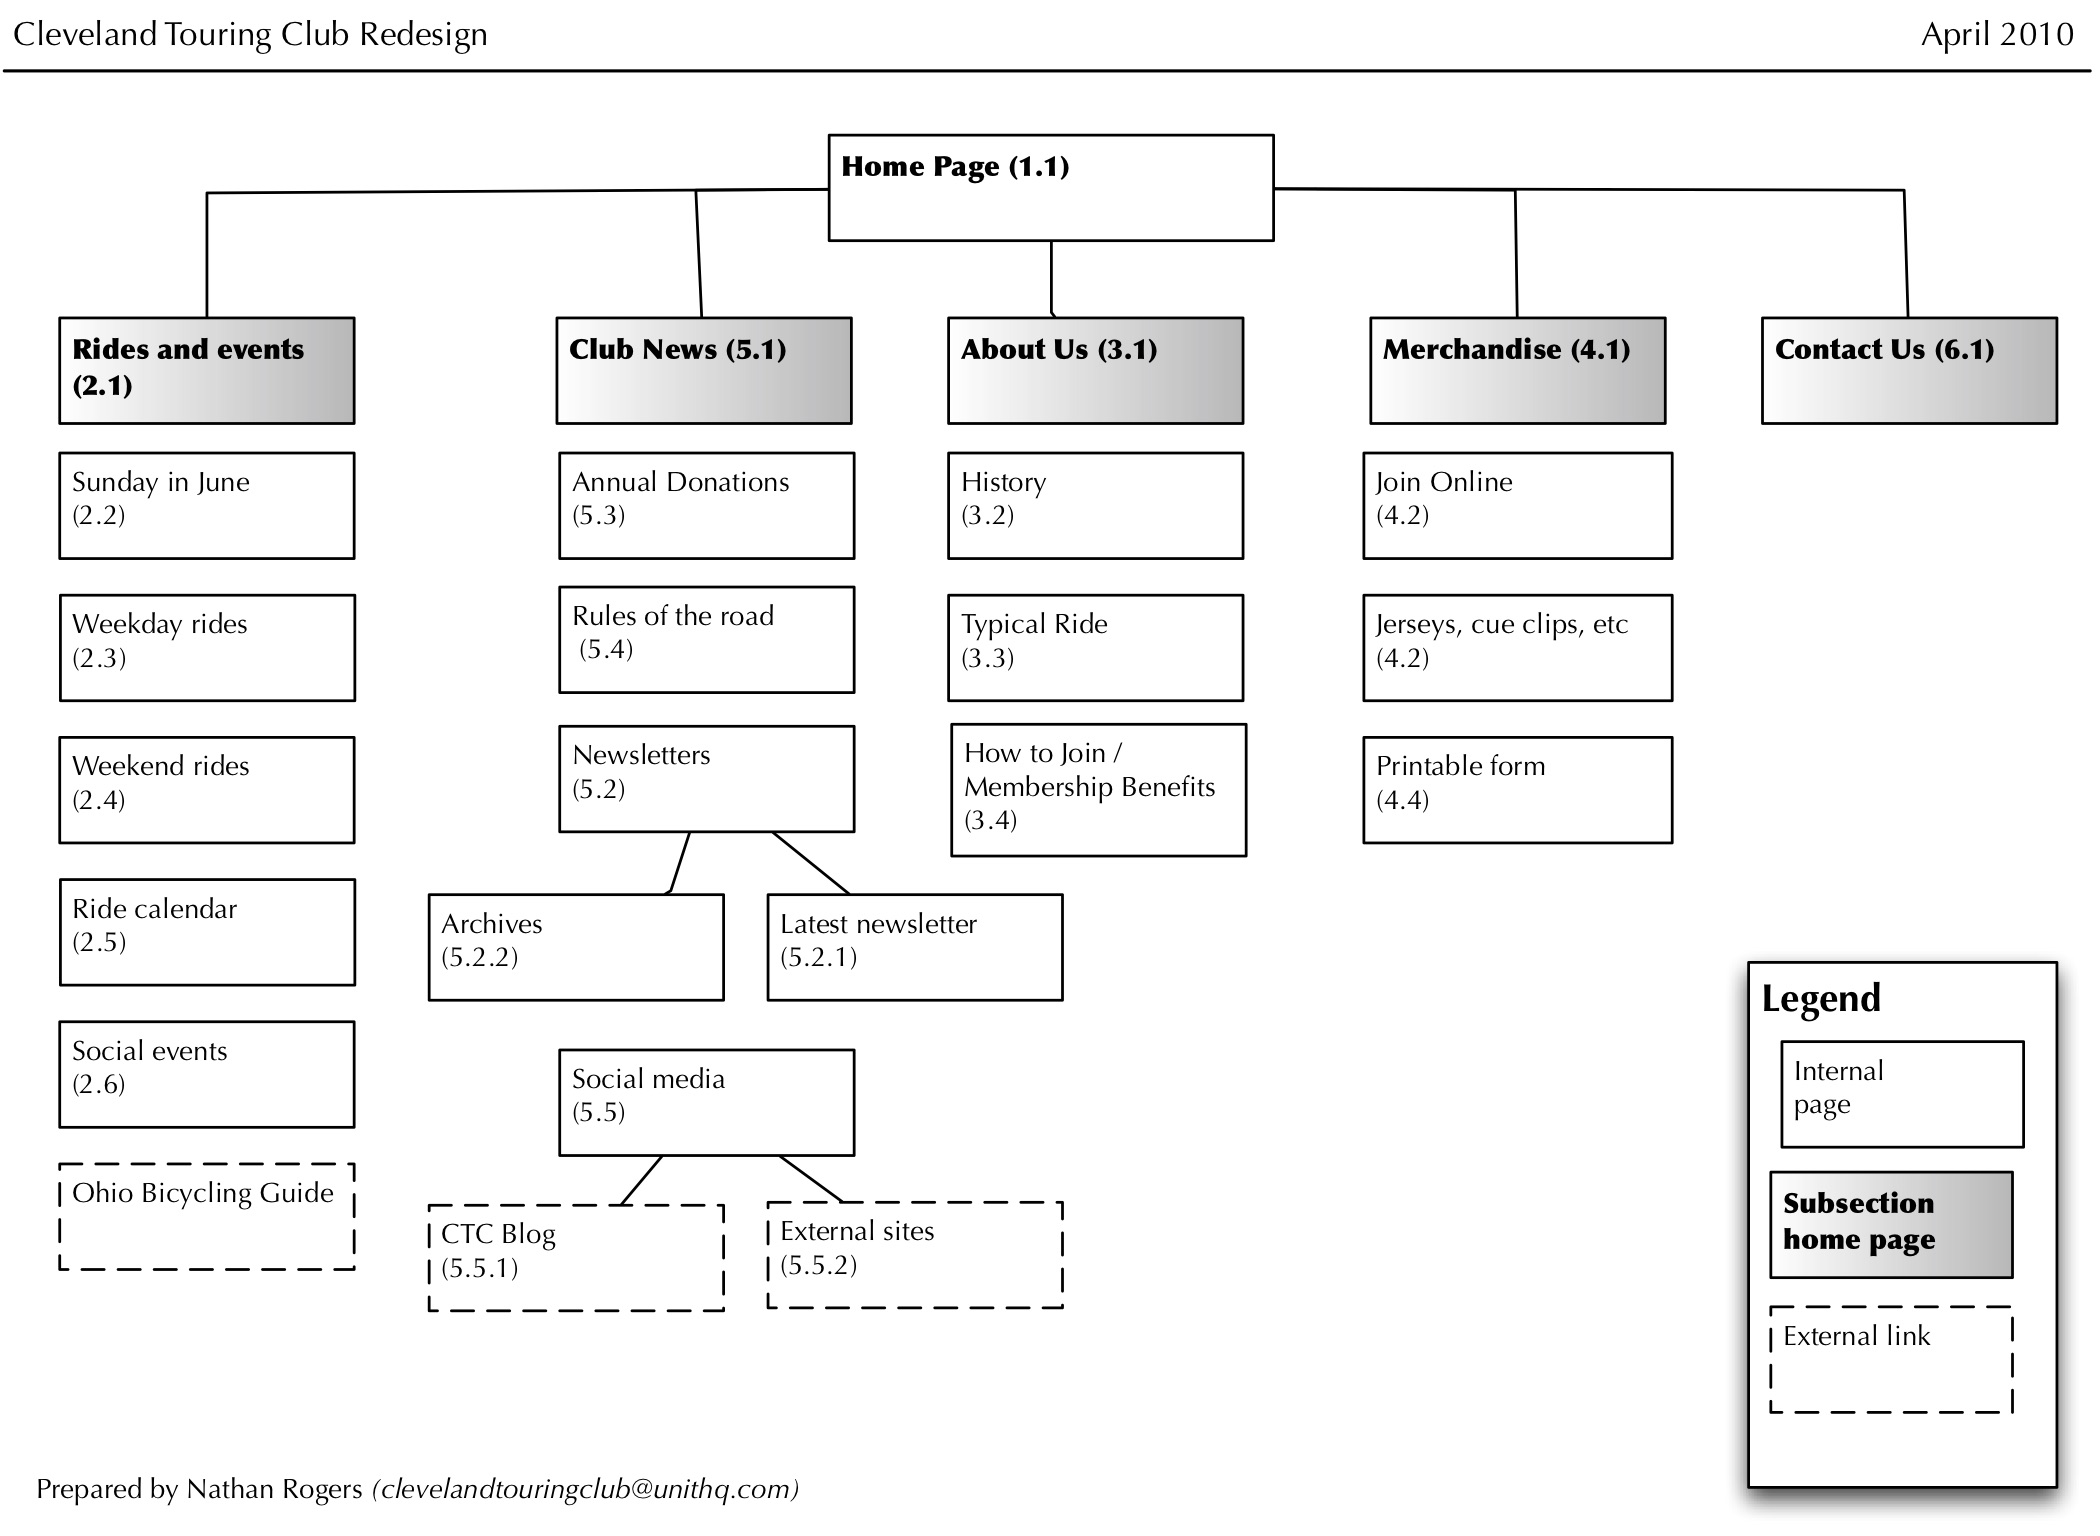 Site map example for nonprofit organization